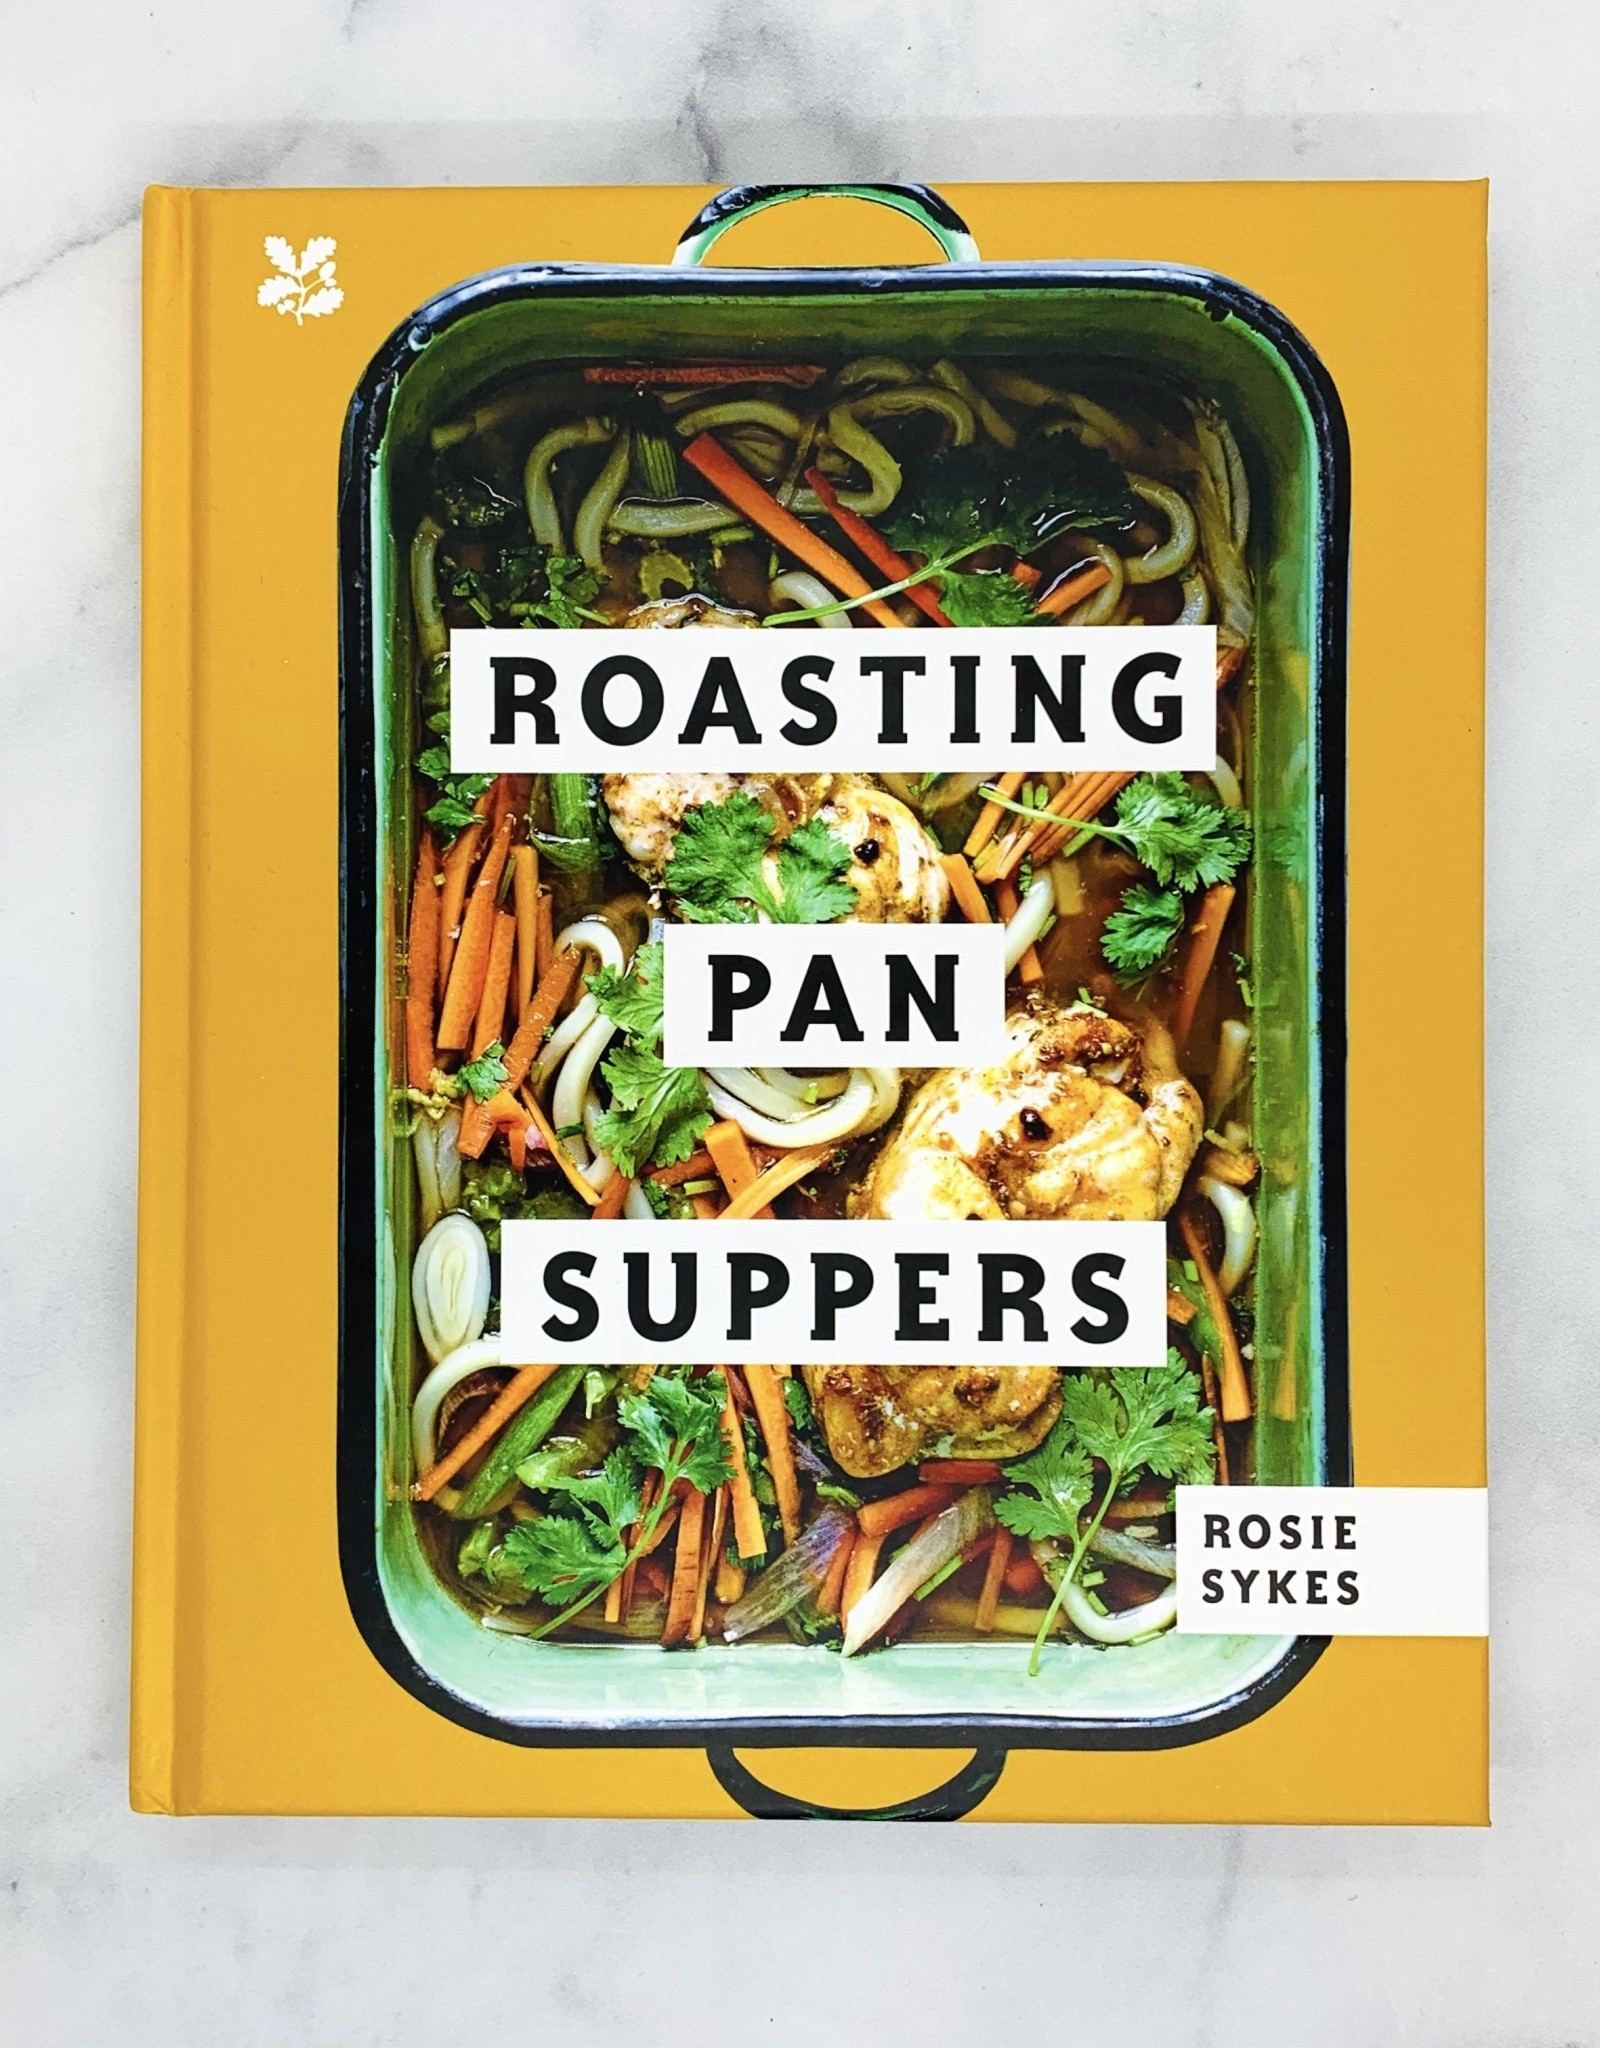 RANDOMHOUSE Roasting Pan Suppers